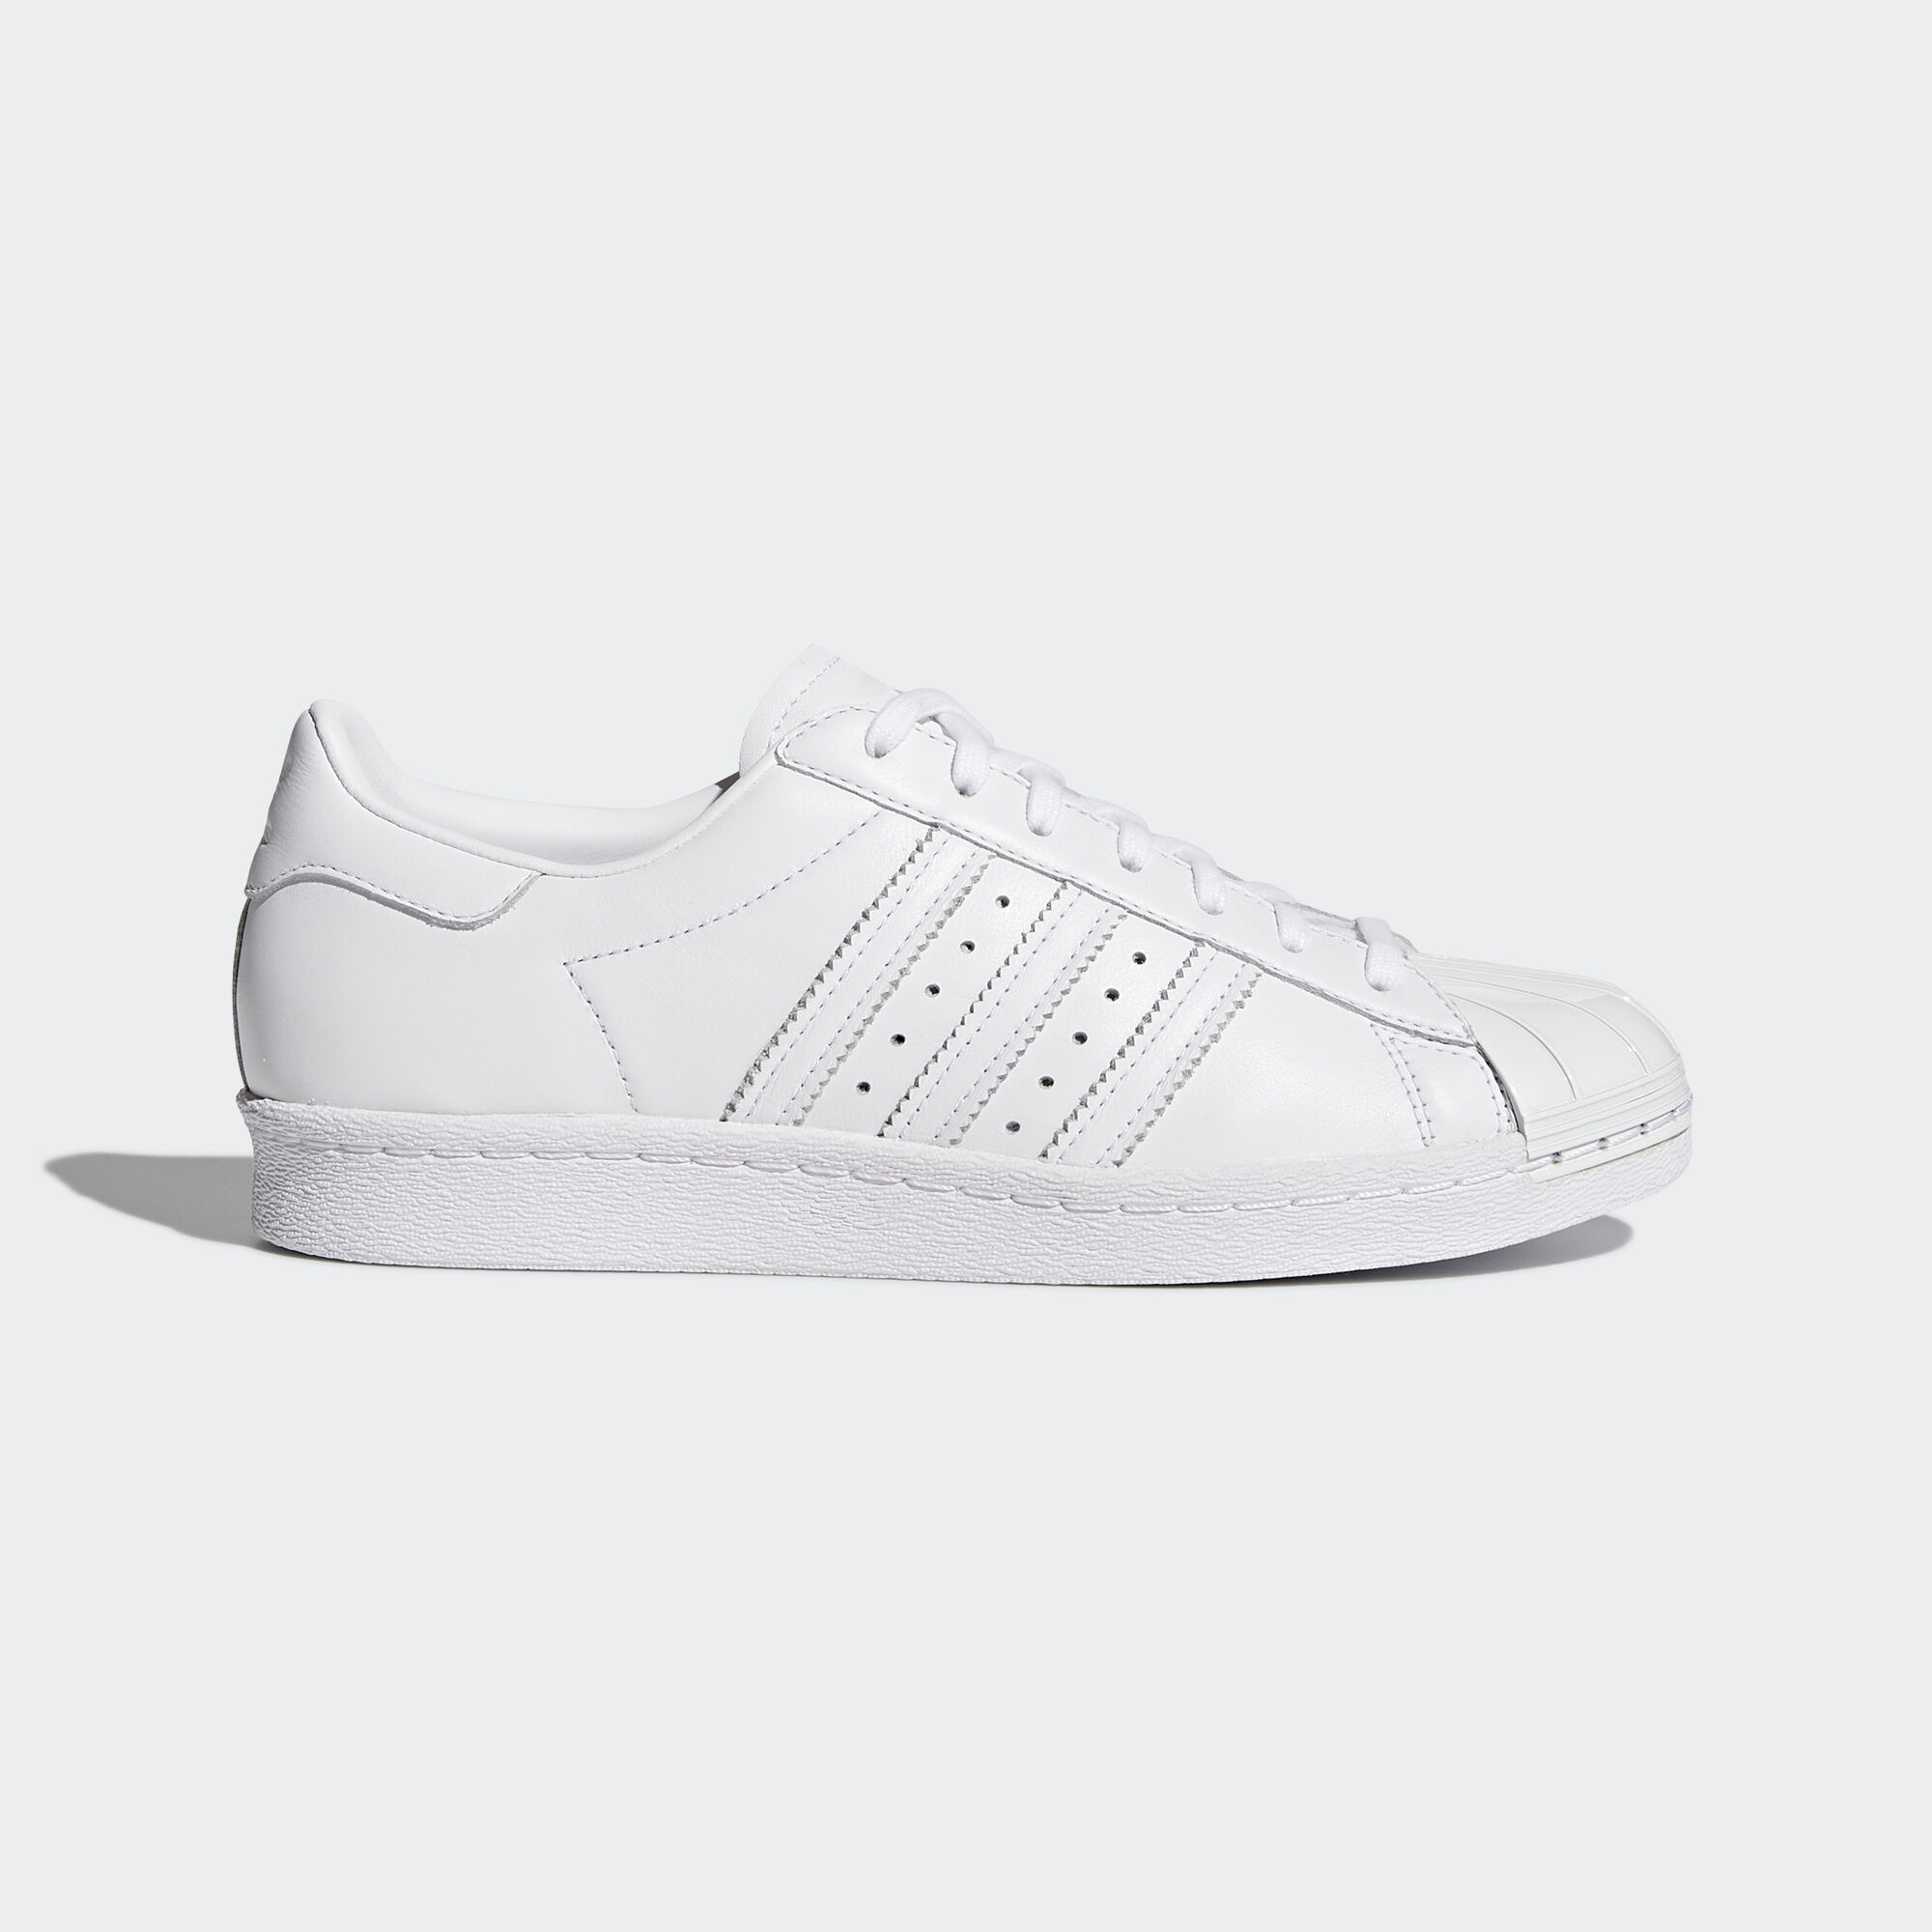 coyhx adidas Superstar 80s Shoes - White | adidas UK